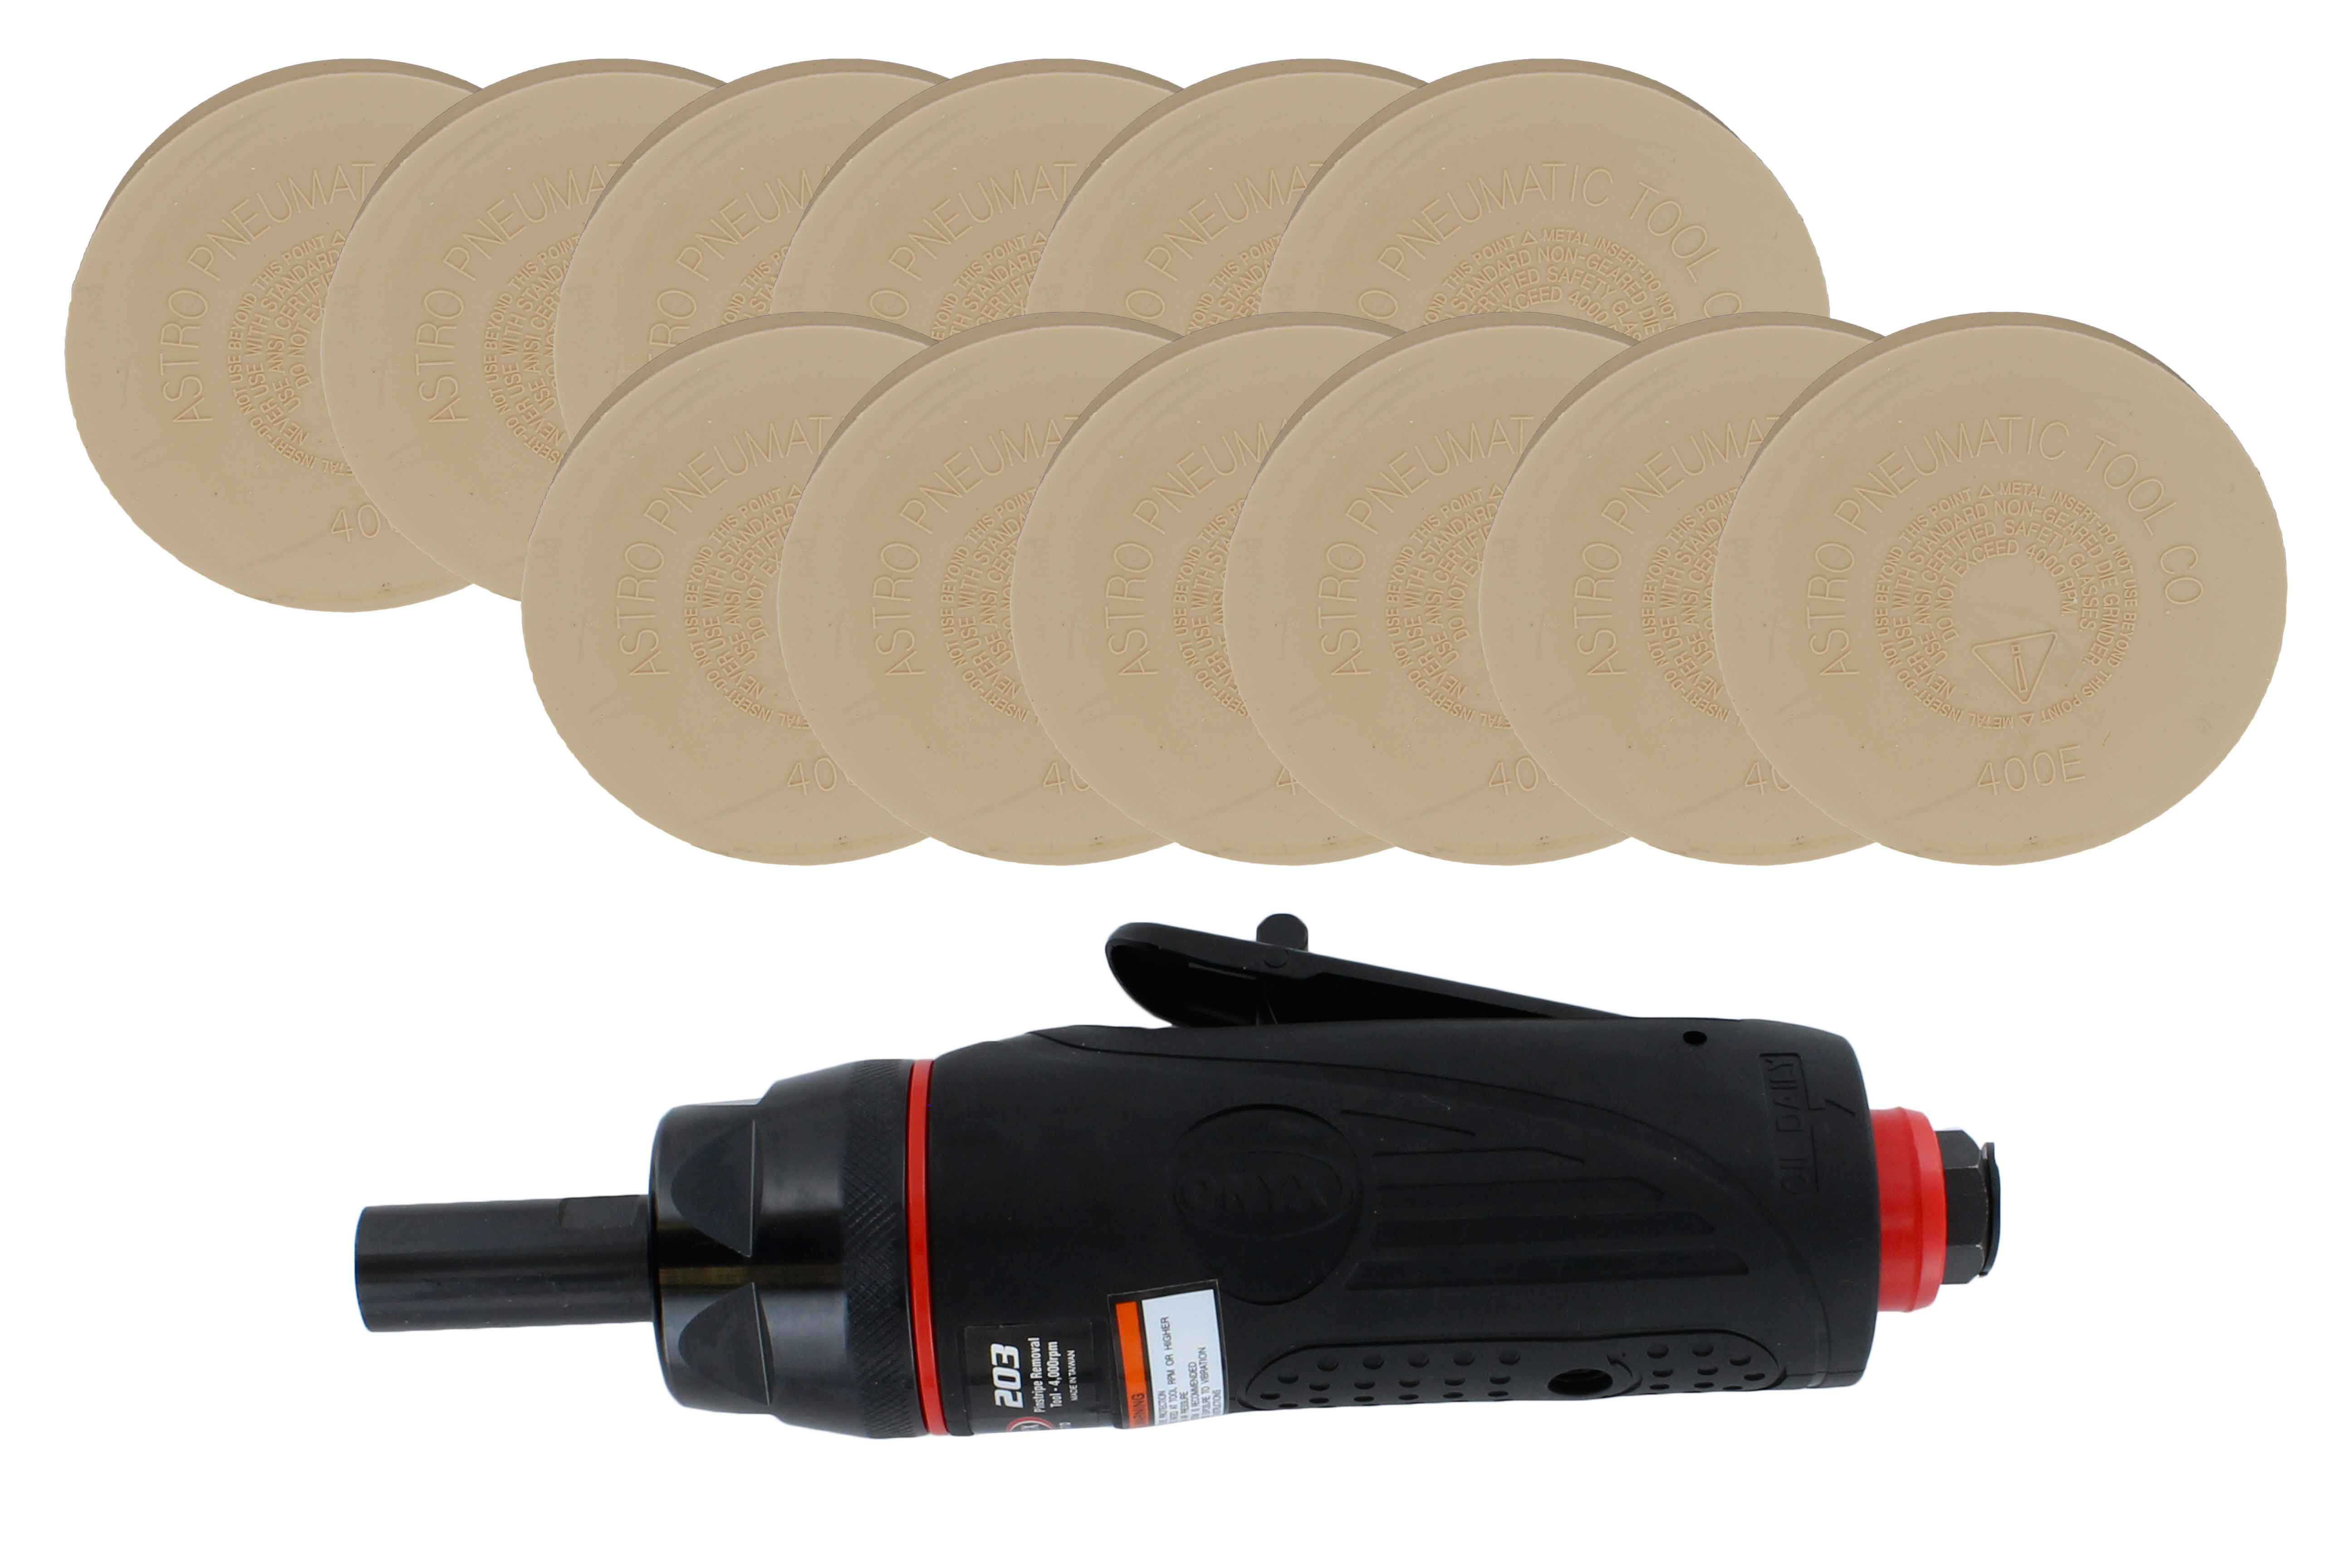 Astro Pneumatic 1232 ONYX Pinstripe Removal Kit (1 Tool + 12 Eraser Wheels)